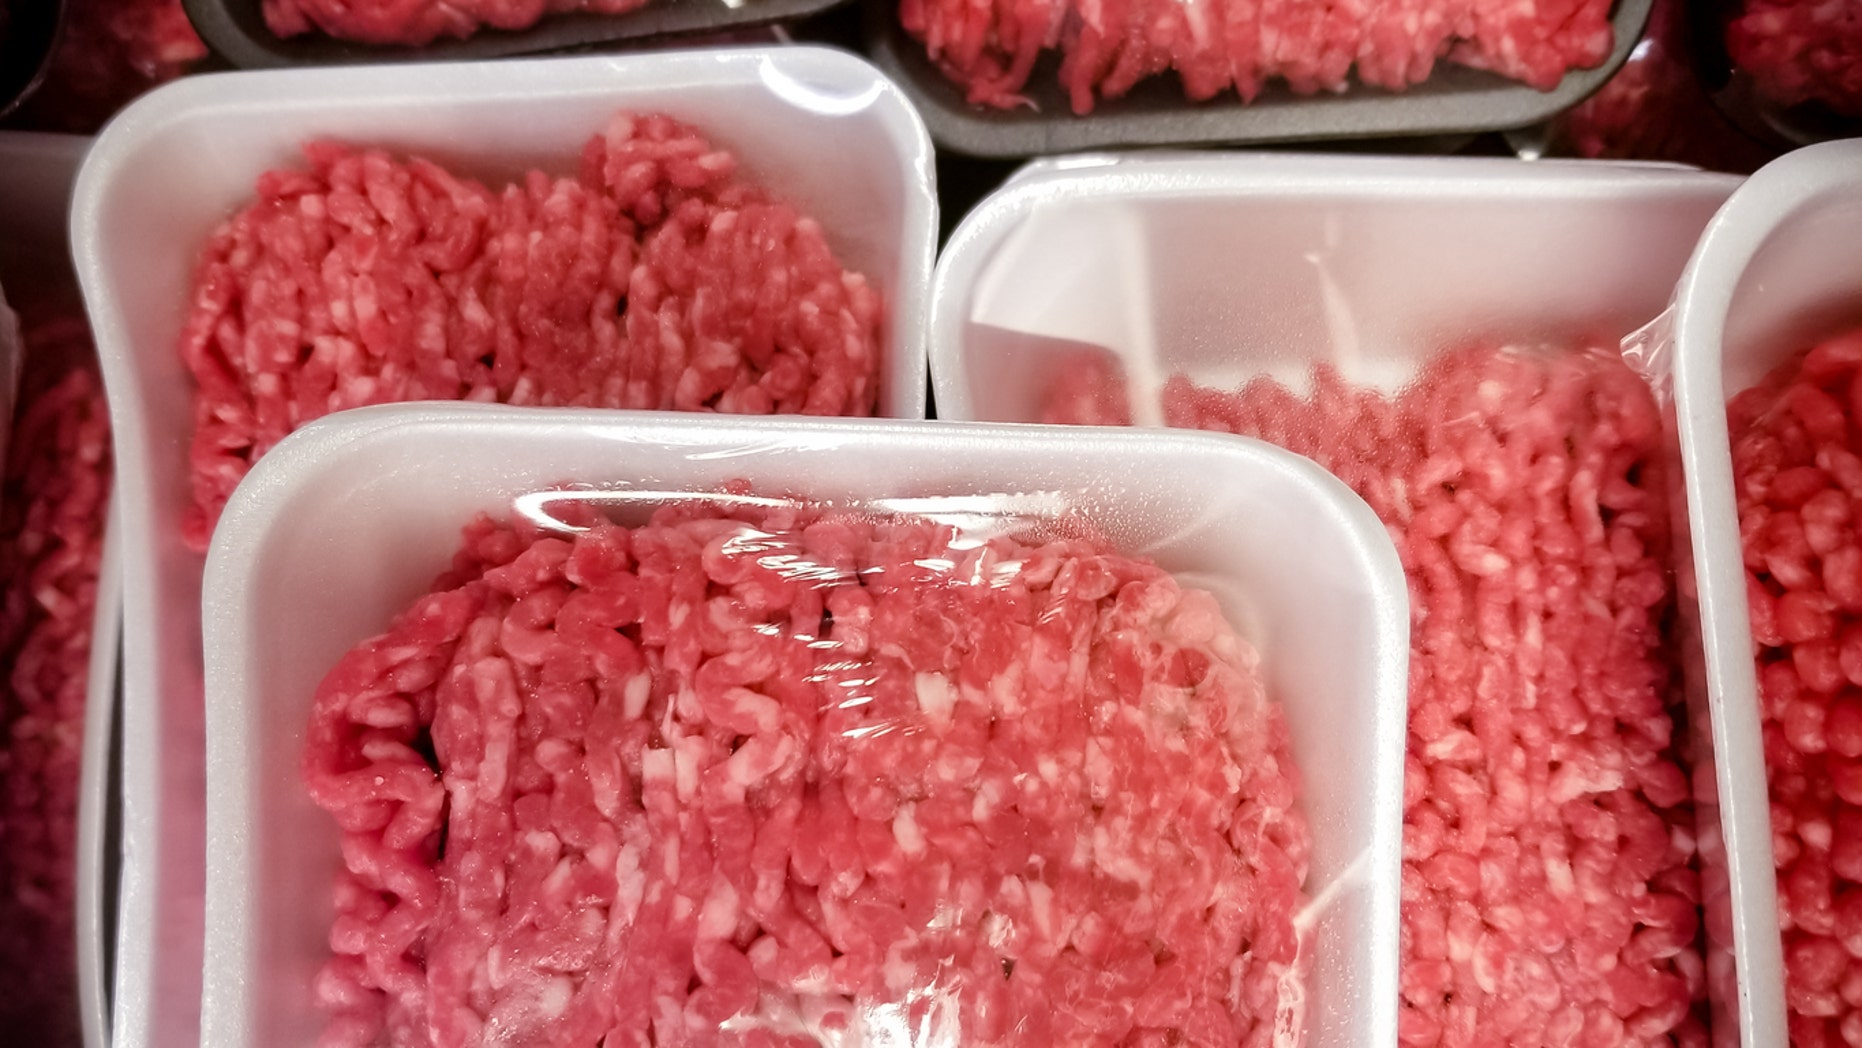 The Centers for Disease Control and Prevention on Friday said that the outbreak has hospitalized 17 people and that patients had reported eating ground beef both at home and at restaurants before falling ill